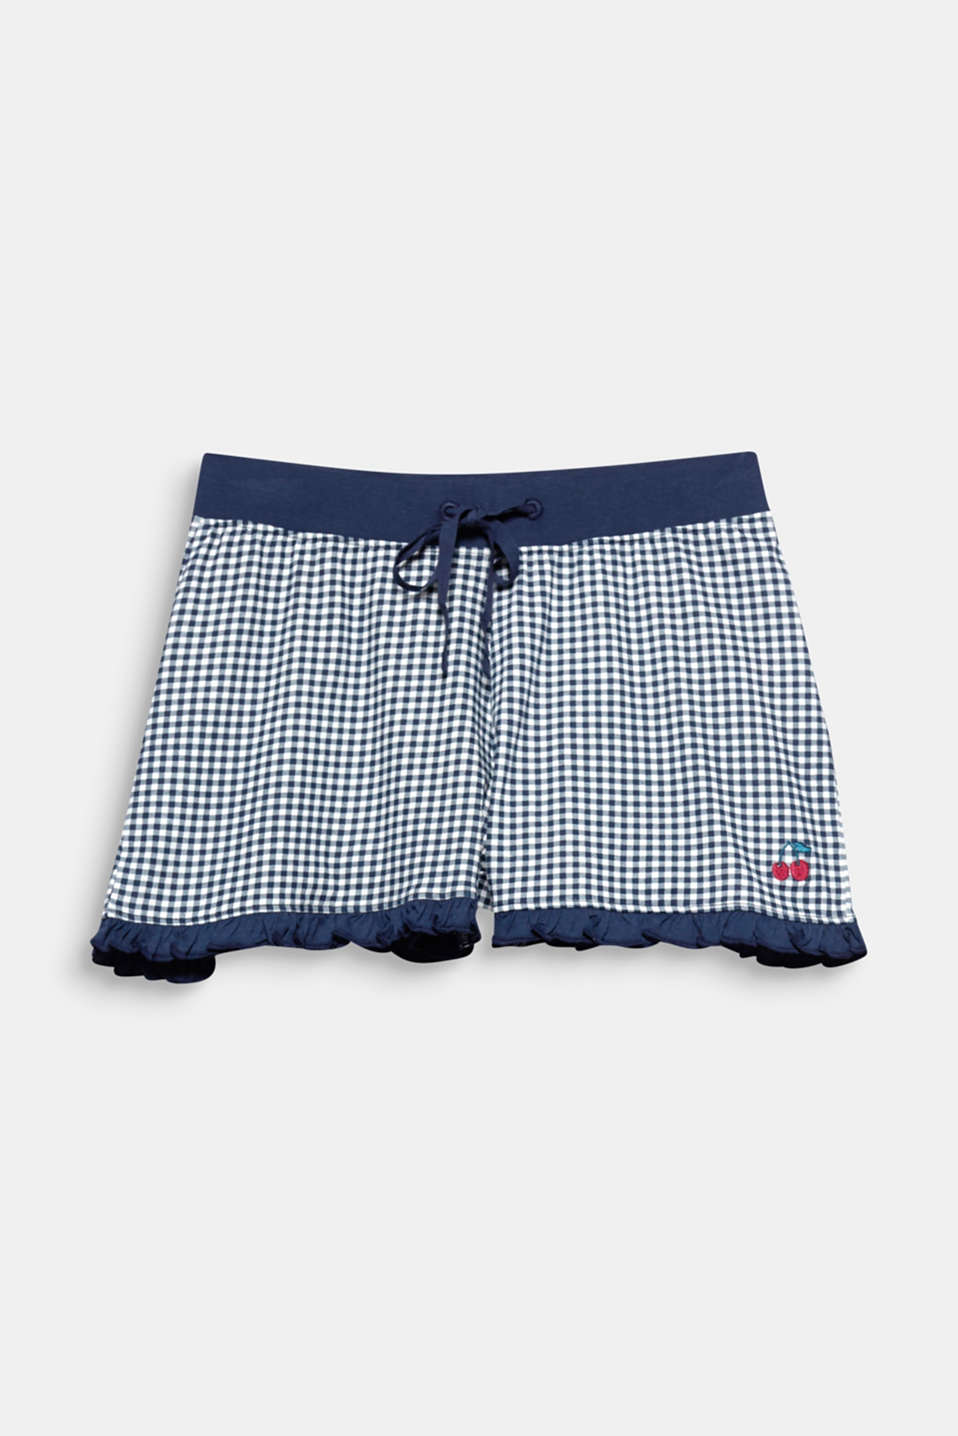 With frilly hem borders, cherry embroidery and the classic checked pattern, these shorts are perfect for relaxing!